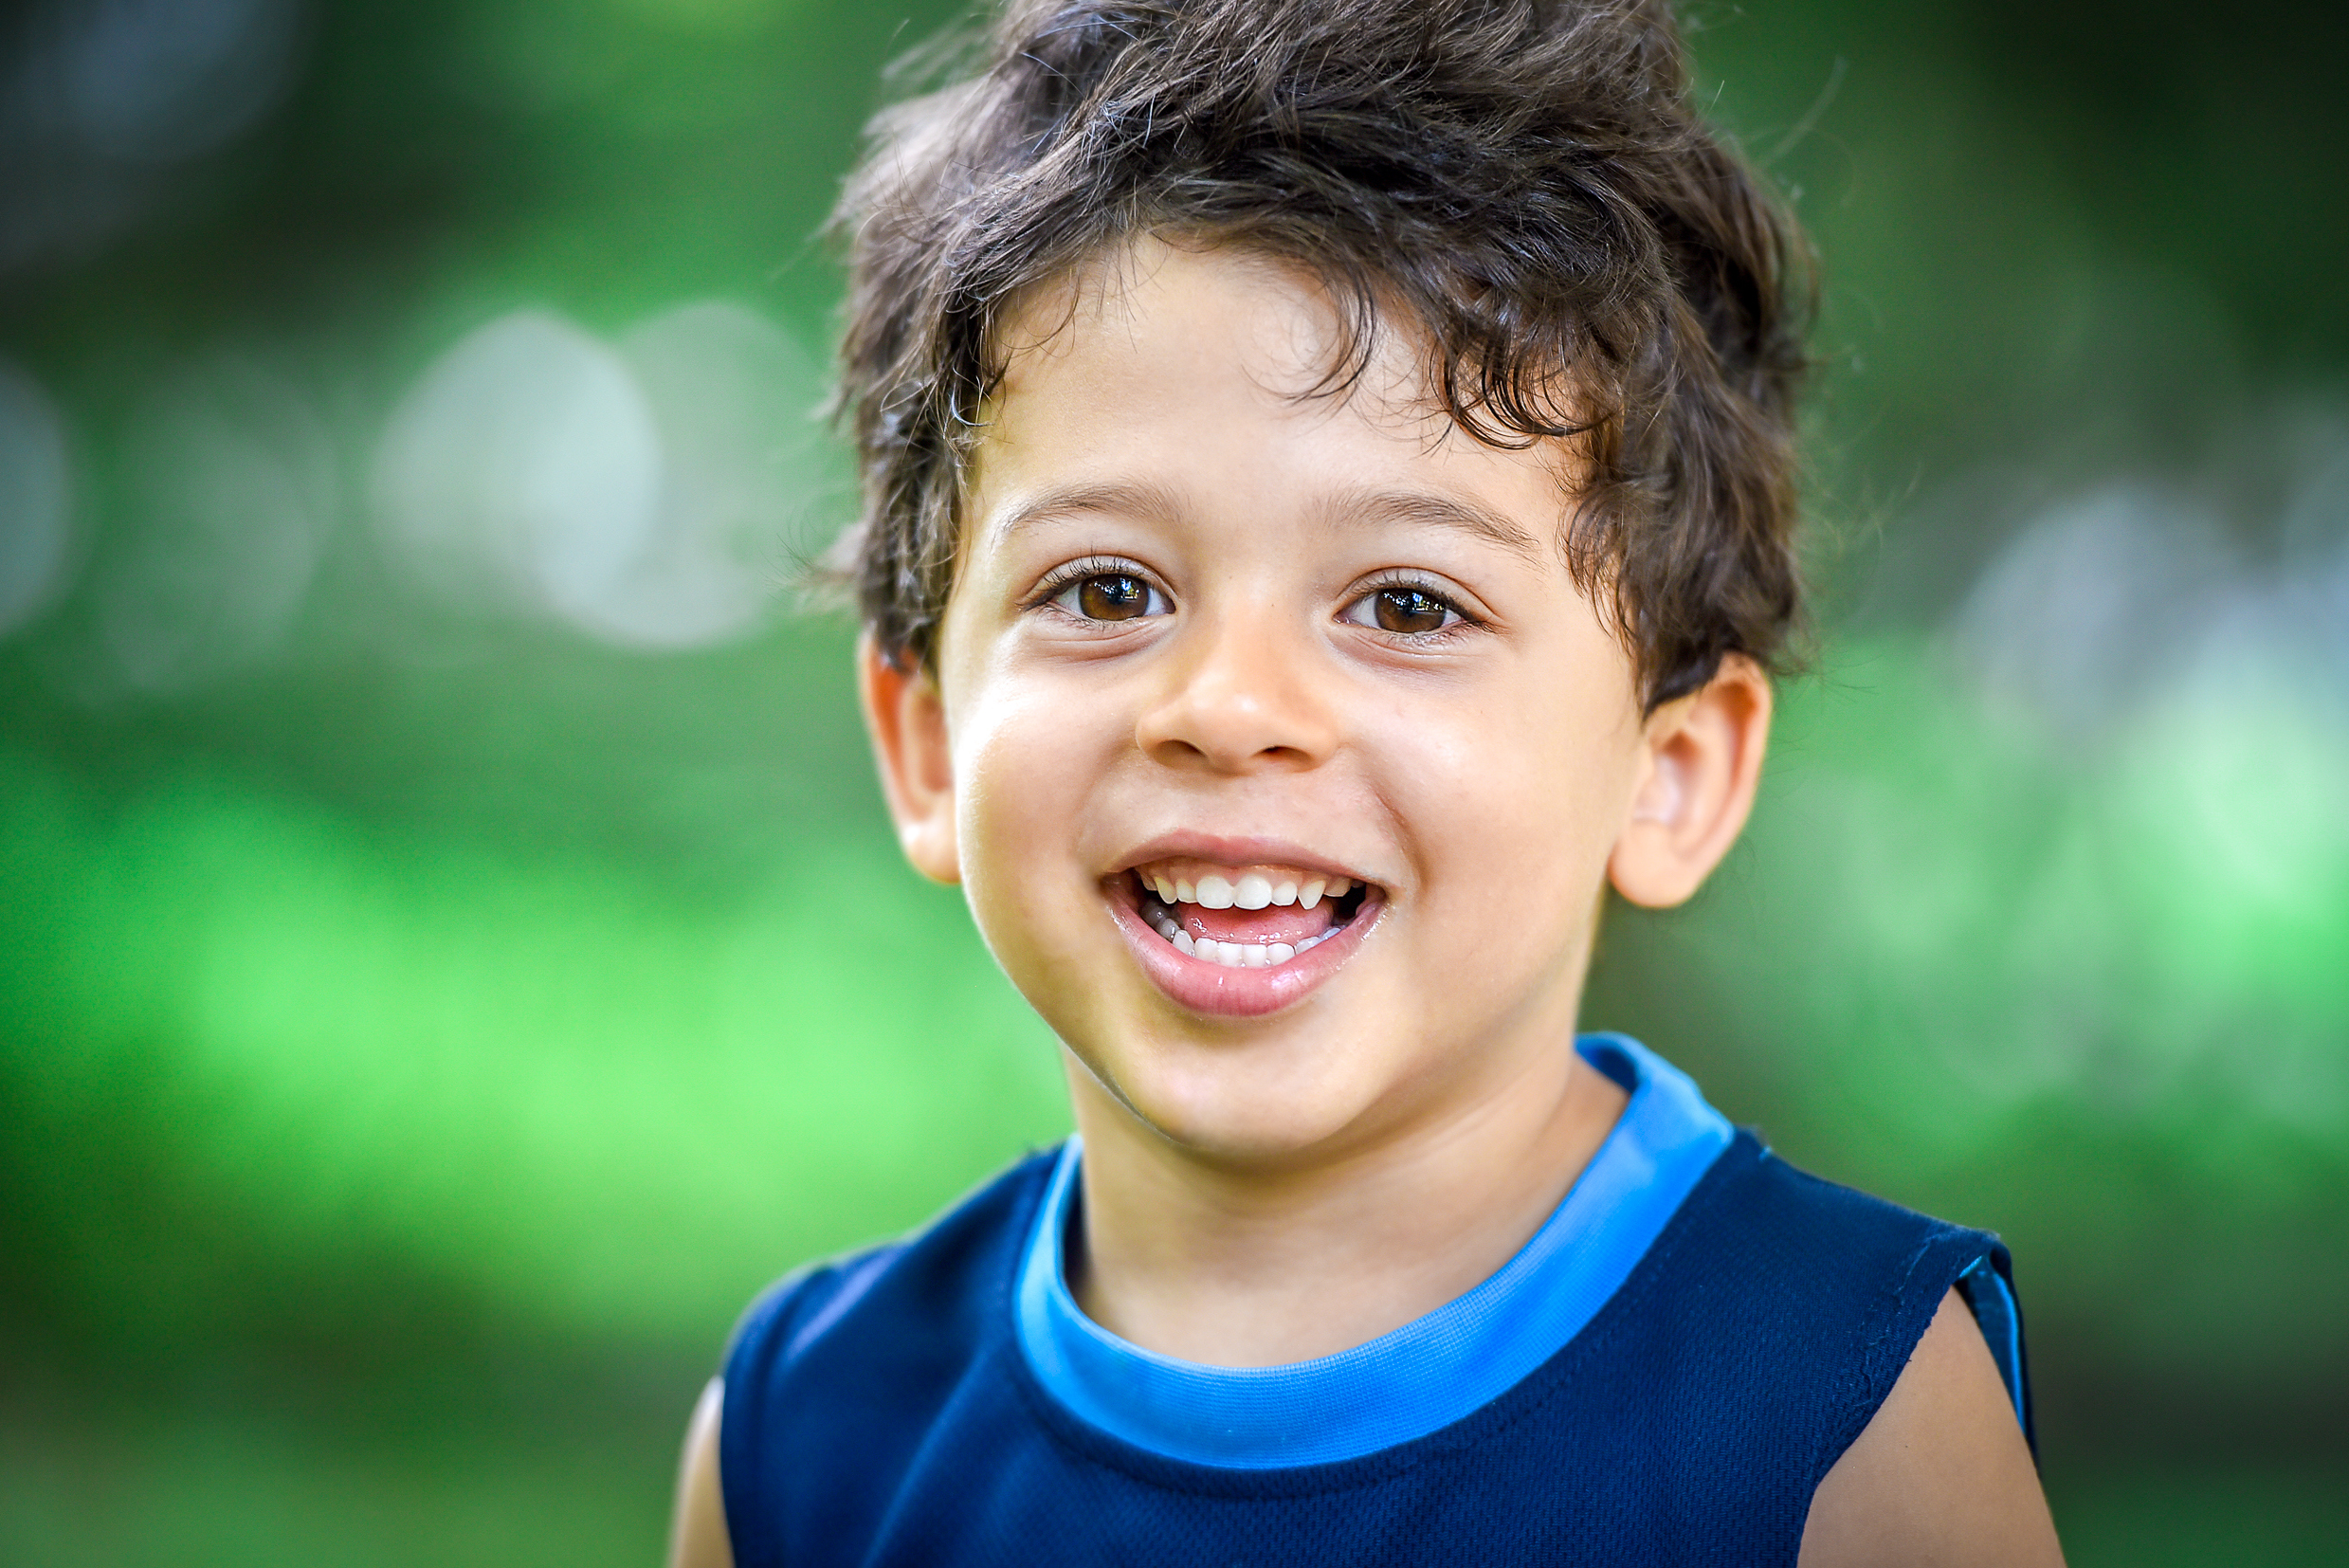 Our Legacy - We exist to assist those children that cannot – through their existing means – obtain the medical, financial or positive guidance necessary to live a productive and rewarding life. We believe every child deserves the opportunity to thrive.